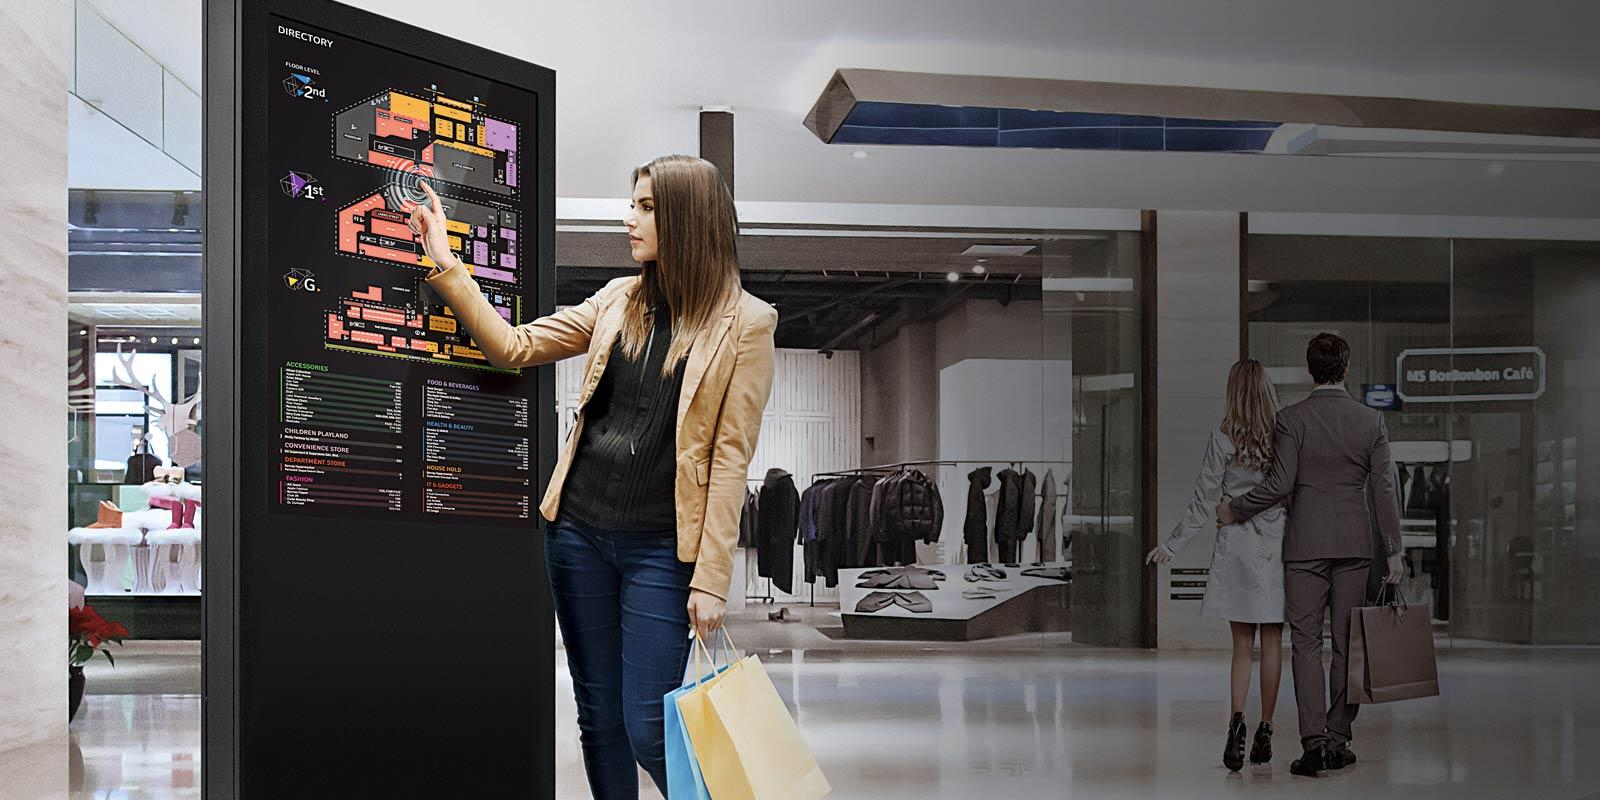 Digital Signage Lg Us Business